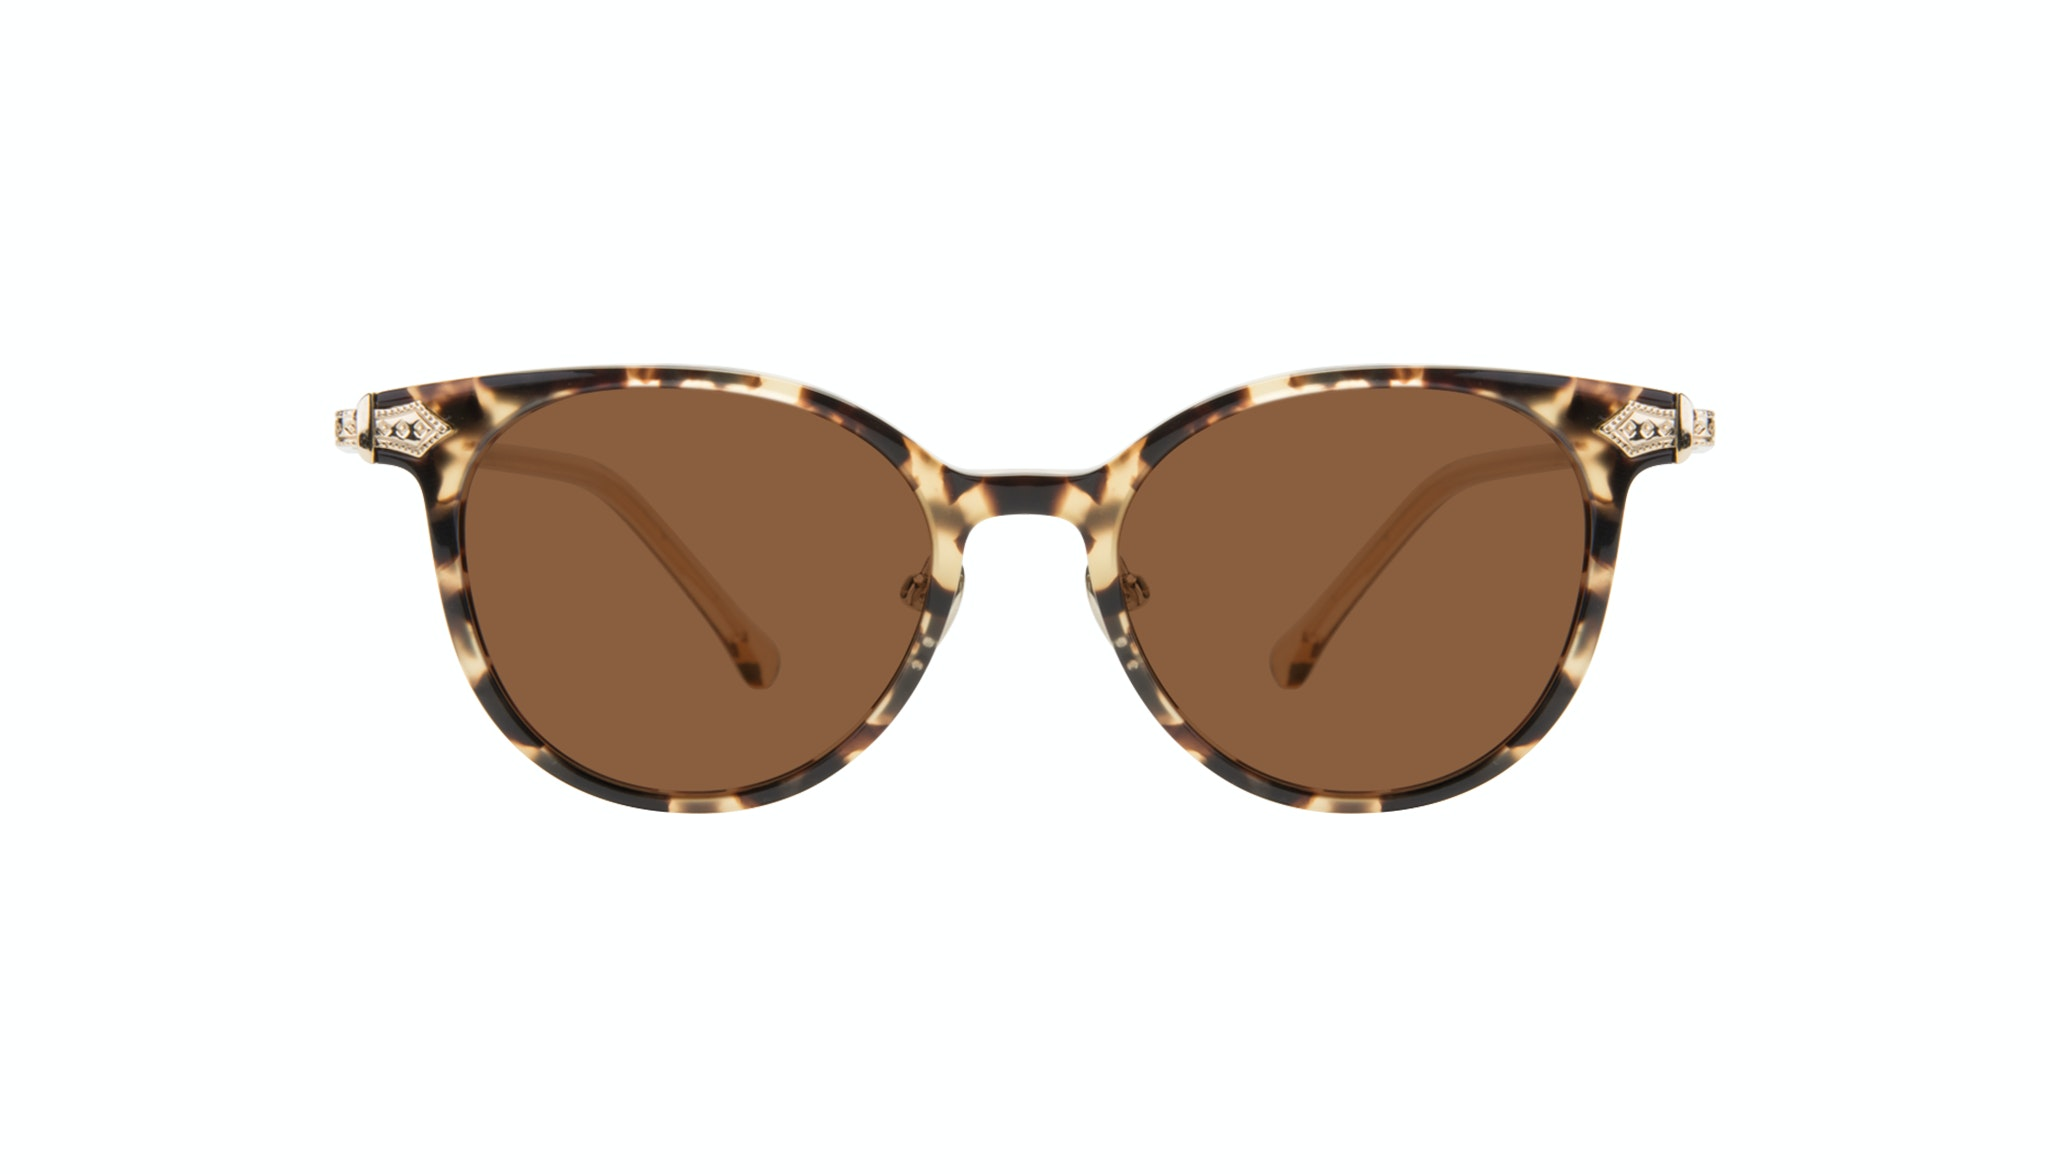 Affordable Fashion Glasses Round Sunglasses Women Gem Golden Chip